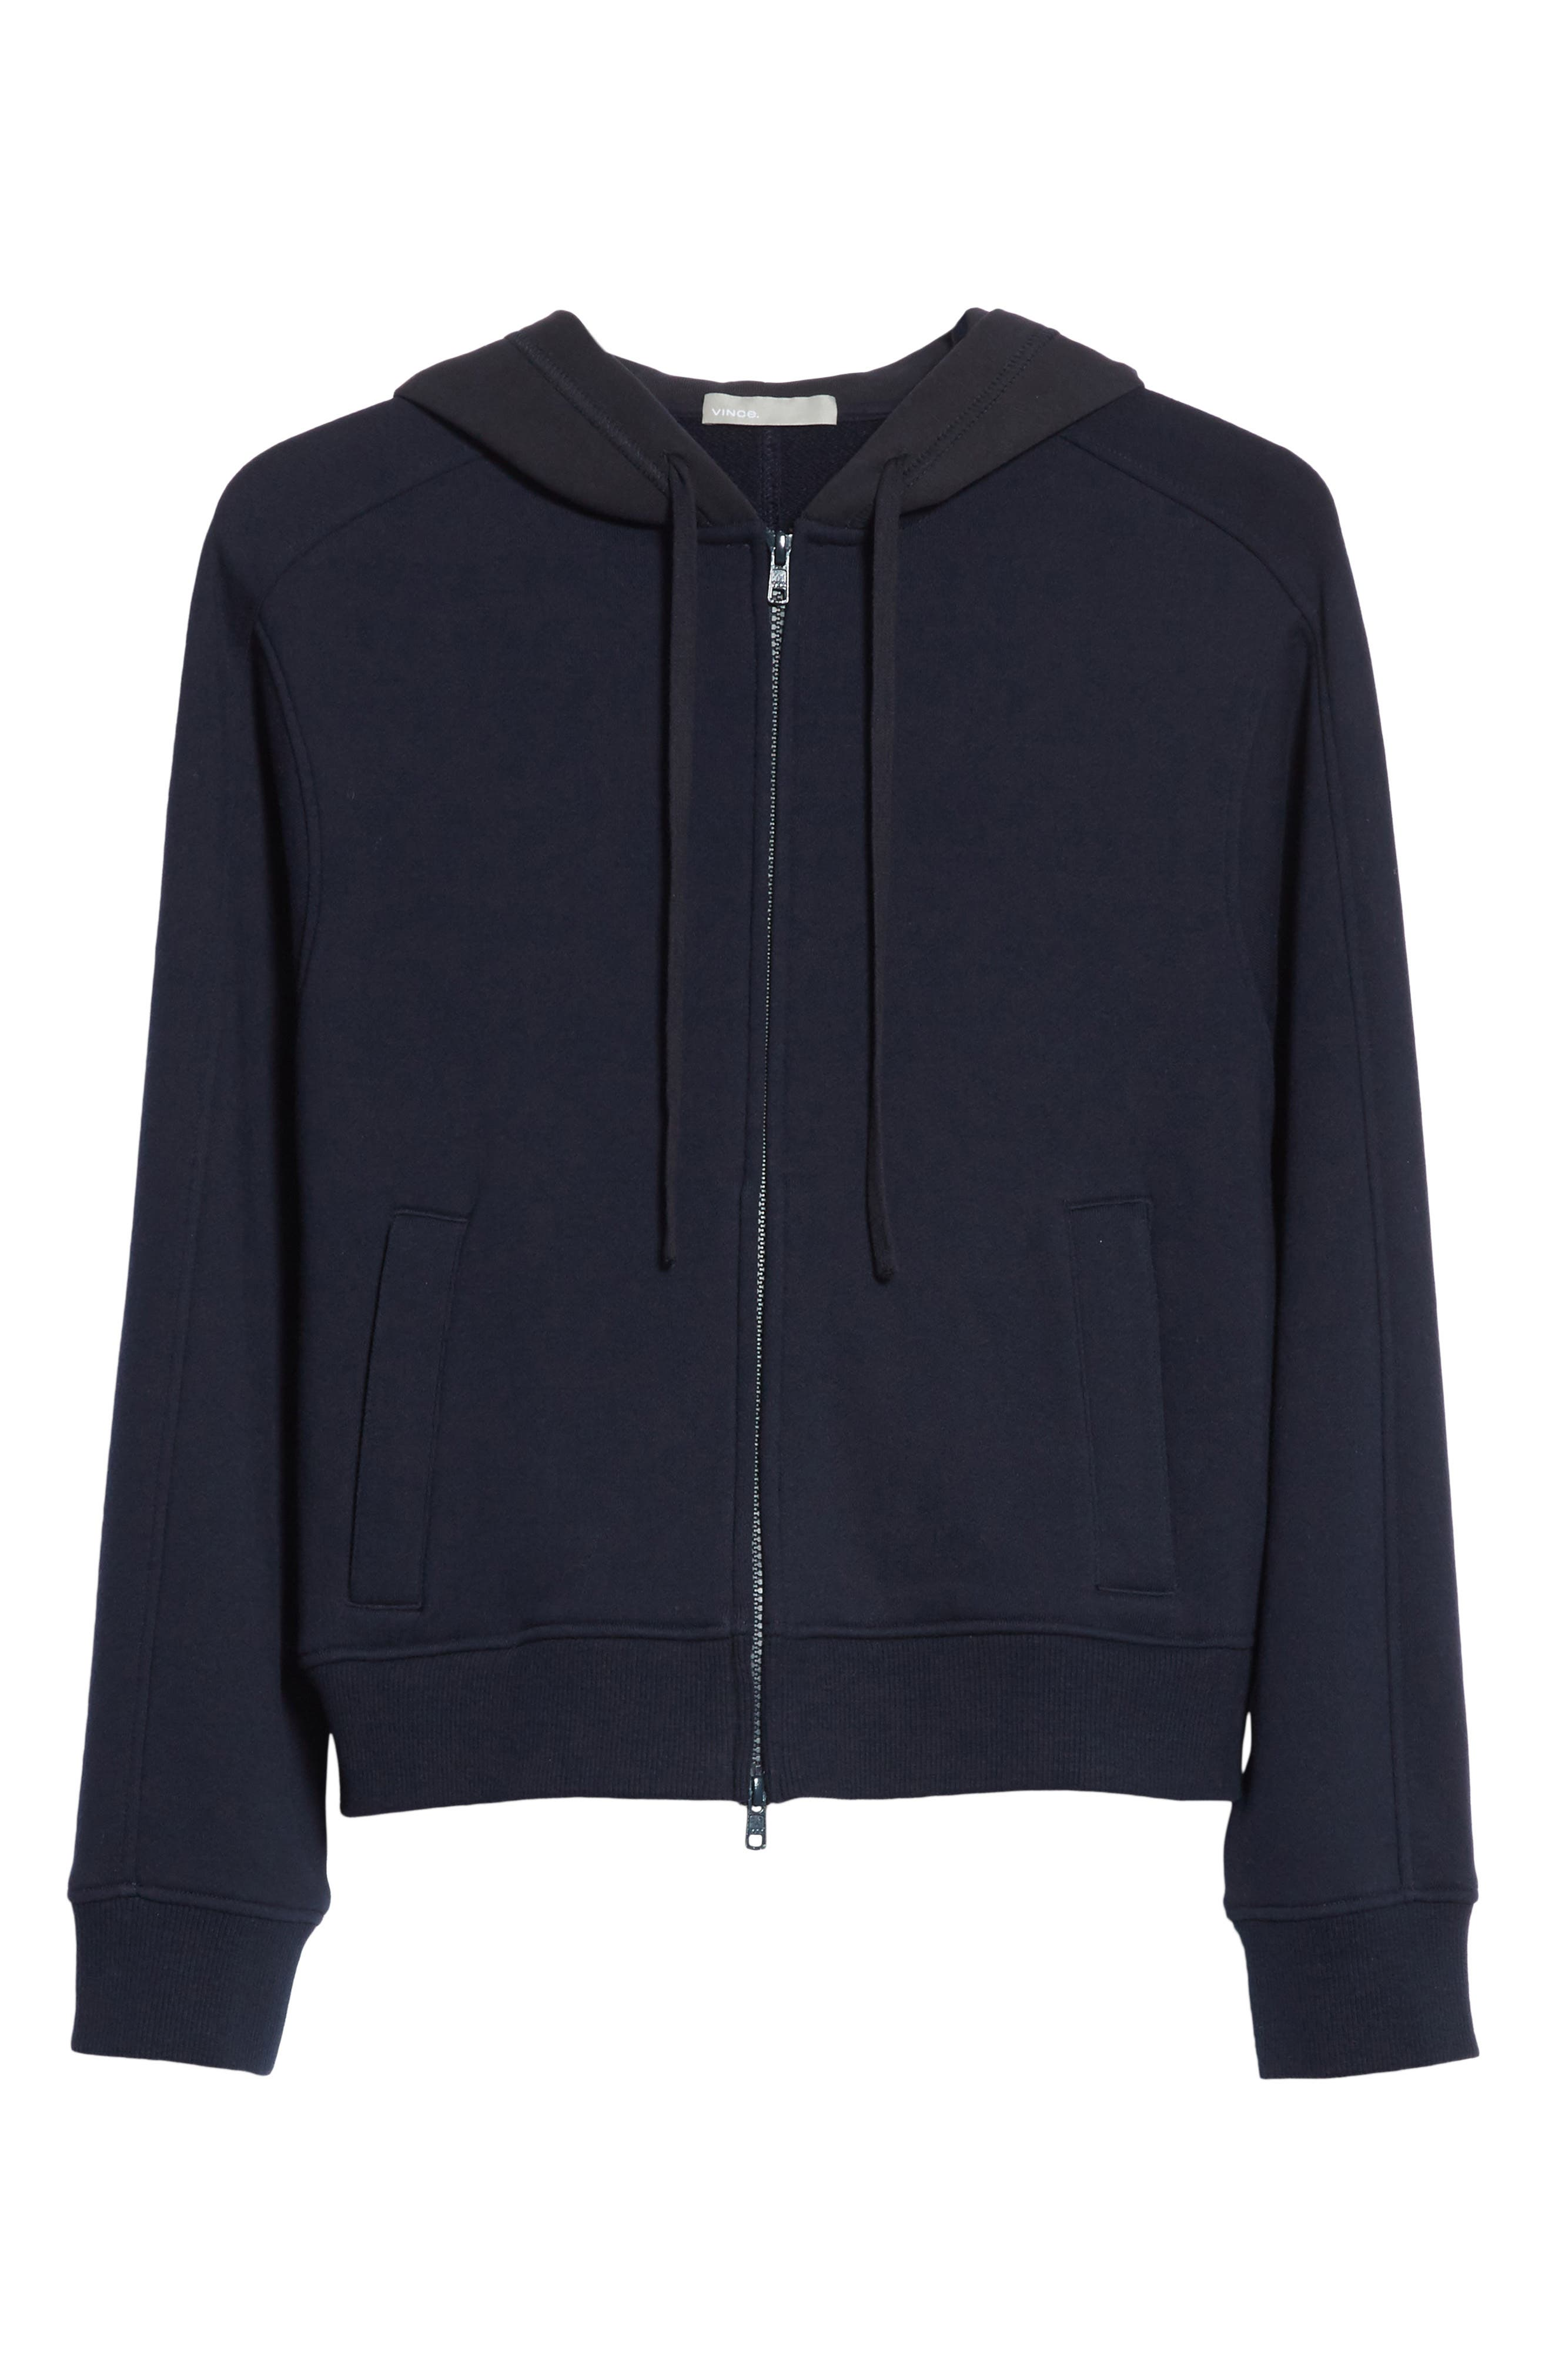 Crop Zip Hoodie,                             Alternate thumbnail 6, color,                             001